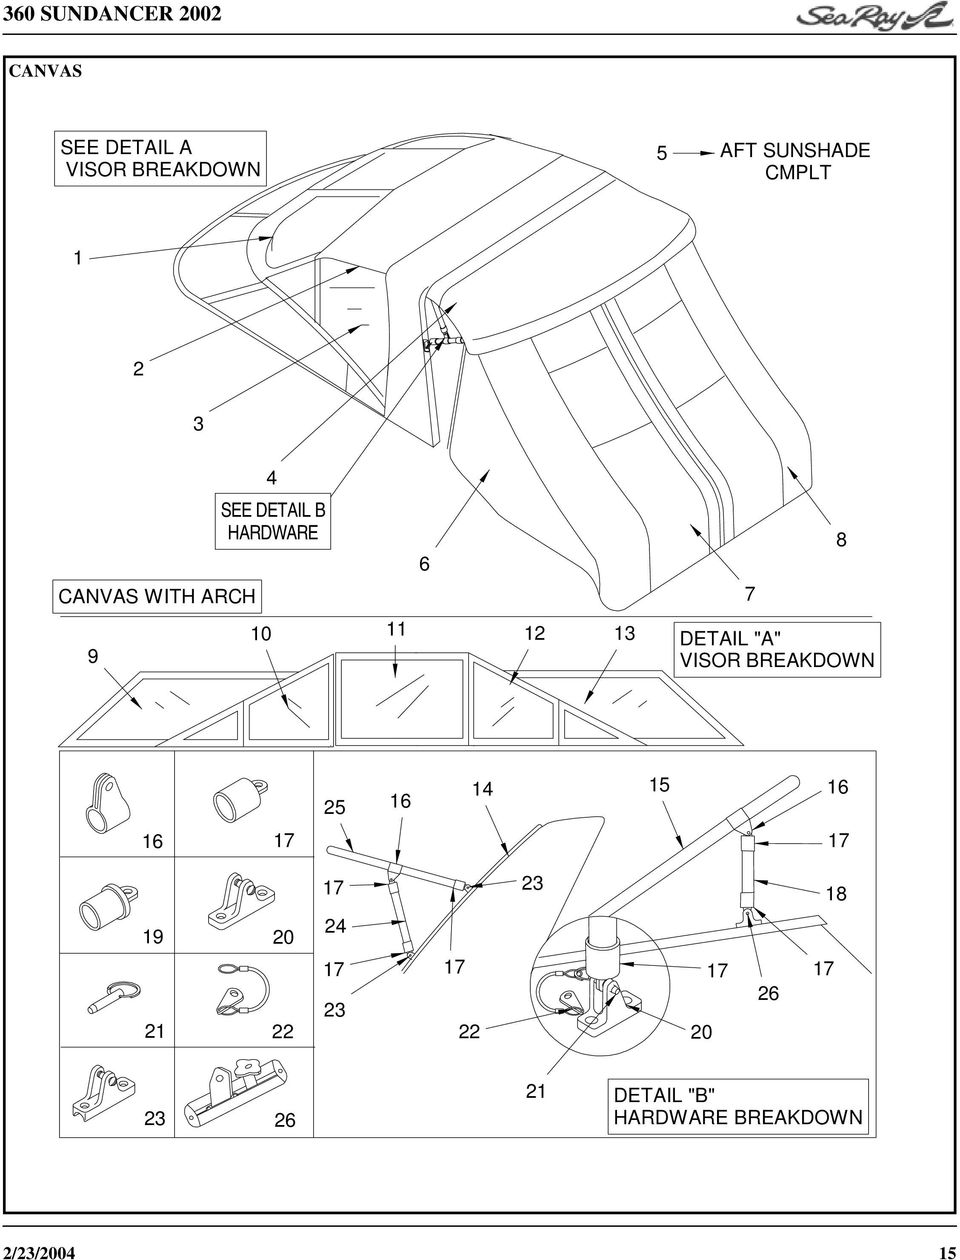 Parts Manual 360 Sundancer Pdf 1989 Mercedes 190 E 2300 Fuse Box Diagram Detail B Hardware A Visor